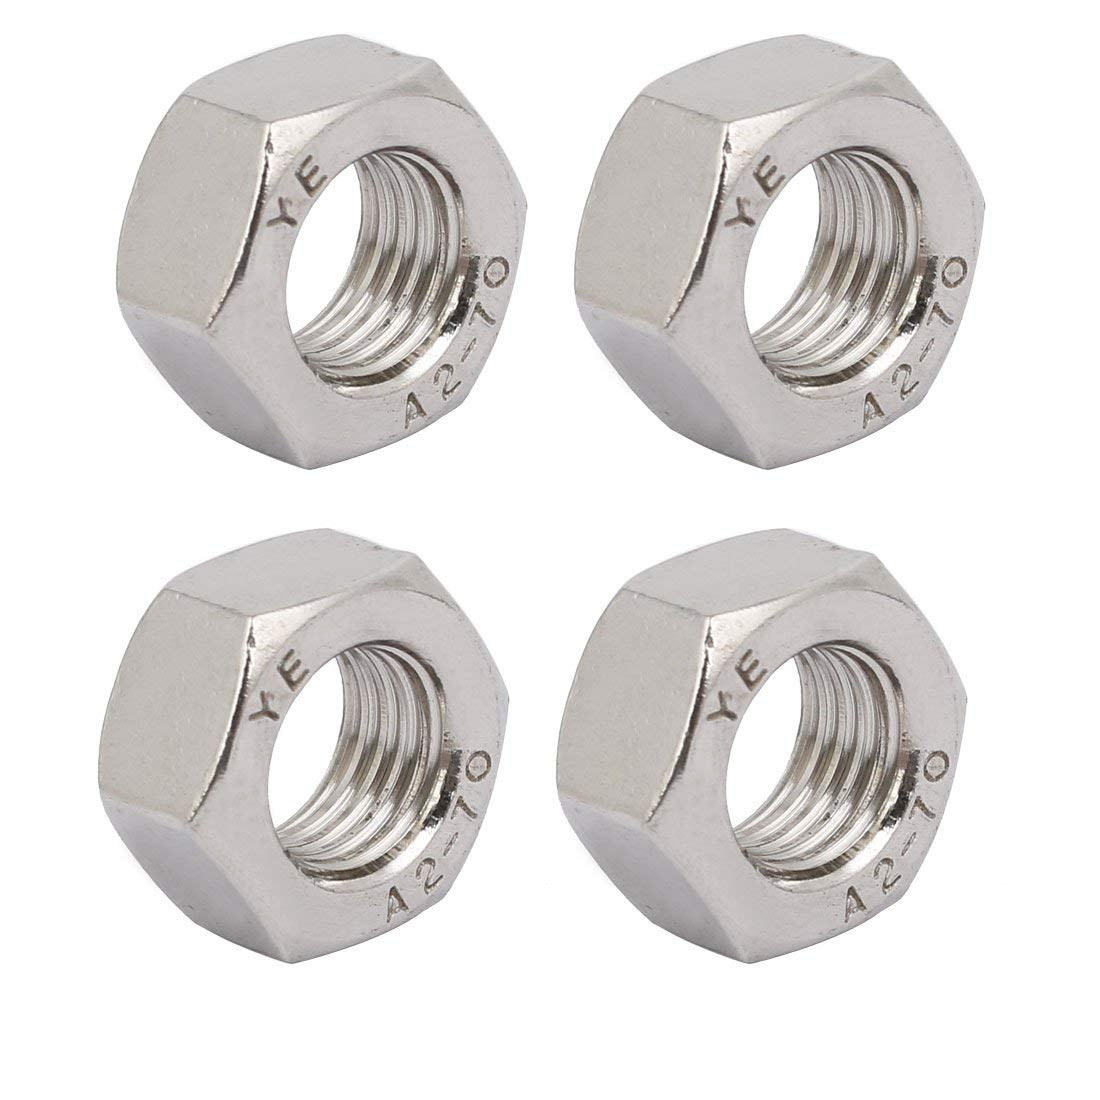 4 Pieces M12 x 1.5 mm Metric Pitch Thread 304 Stainless Steel Hexagon Nuts